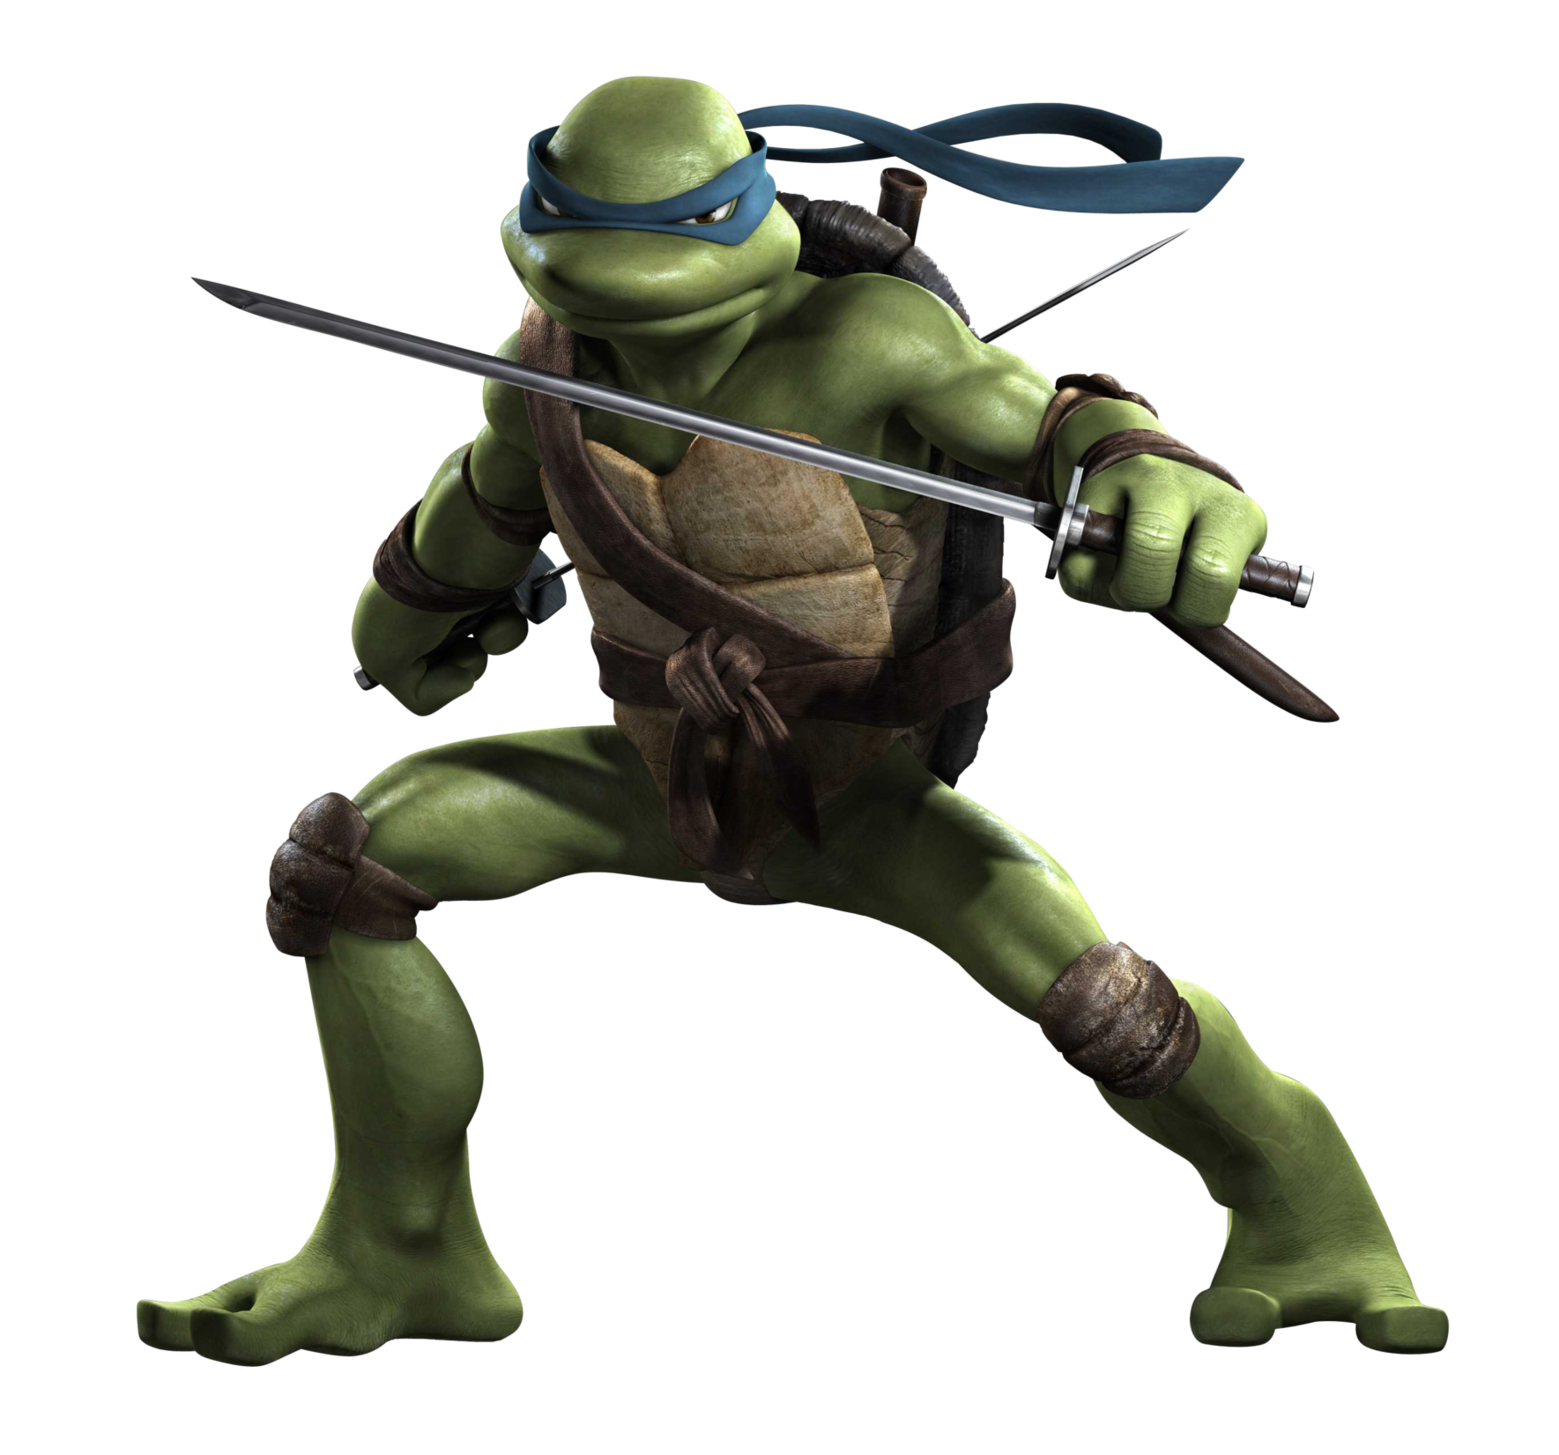 ninja turtle, march dreager blog #24266